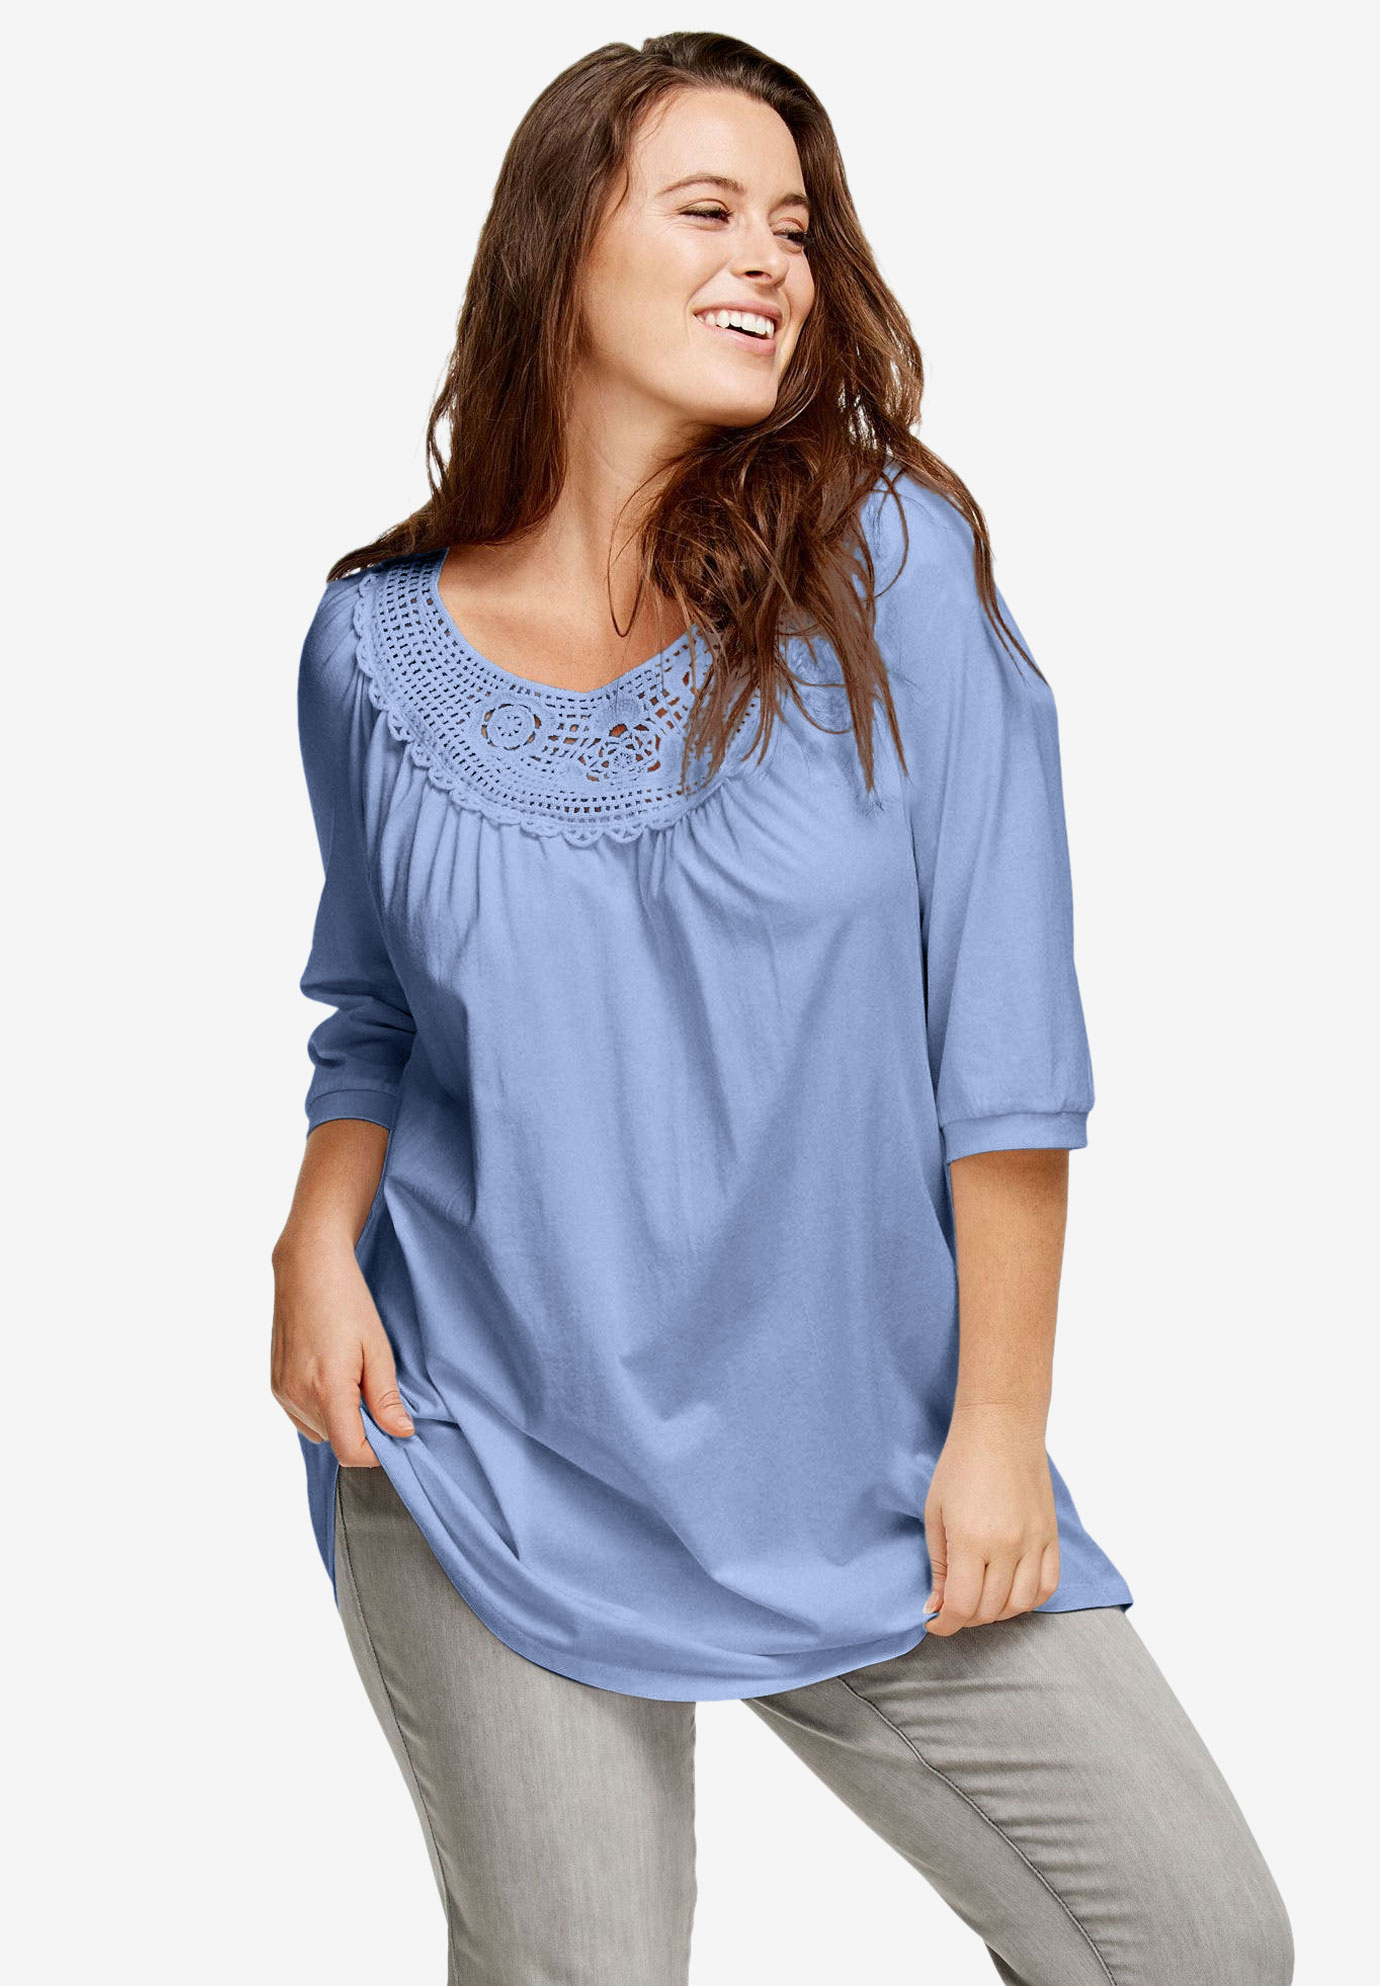 ea80e71fad9 Plus Size Shirts To Wear With Skinny Jeans - Data Dynamic AG